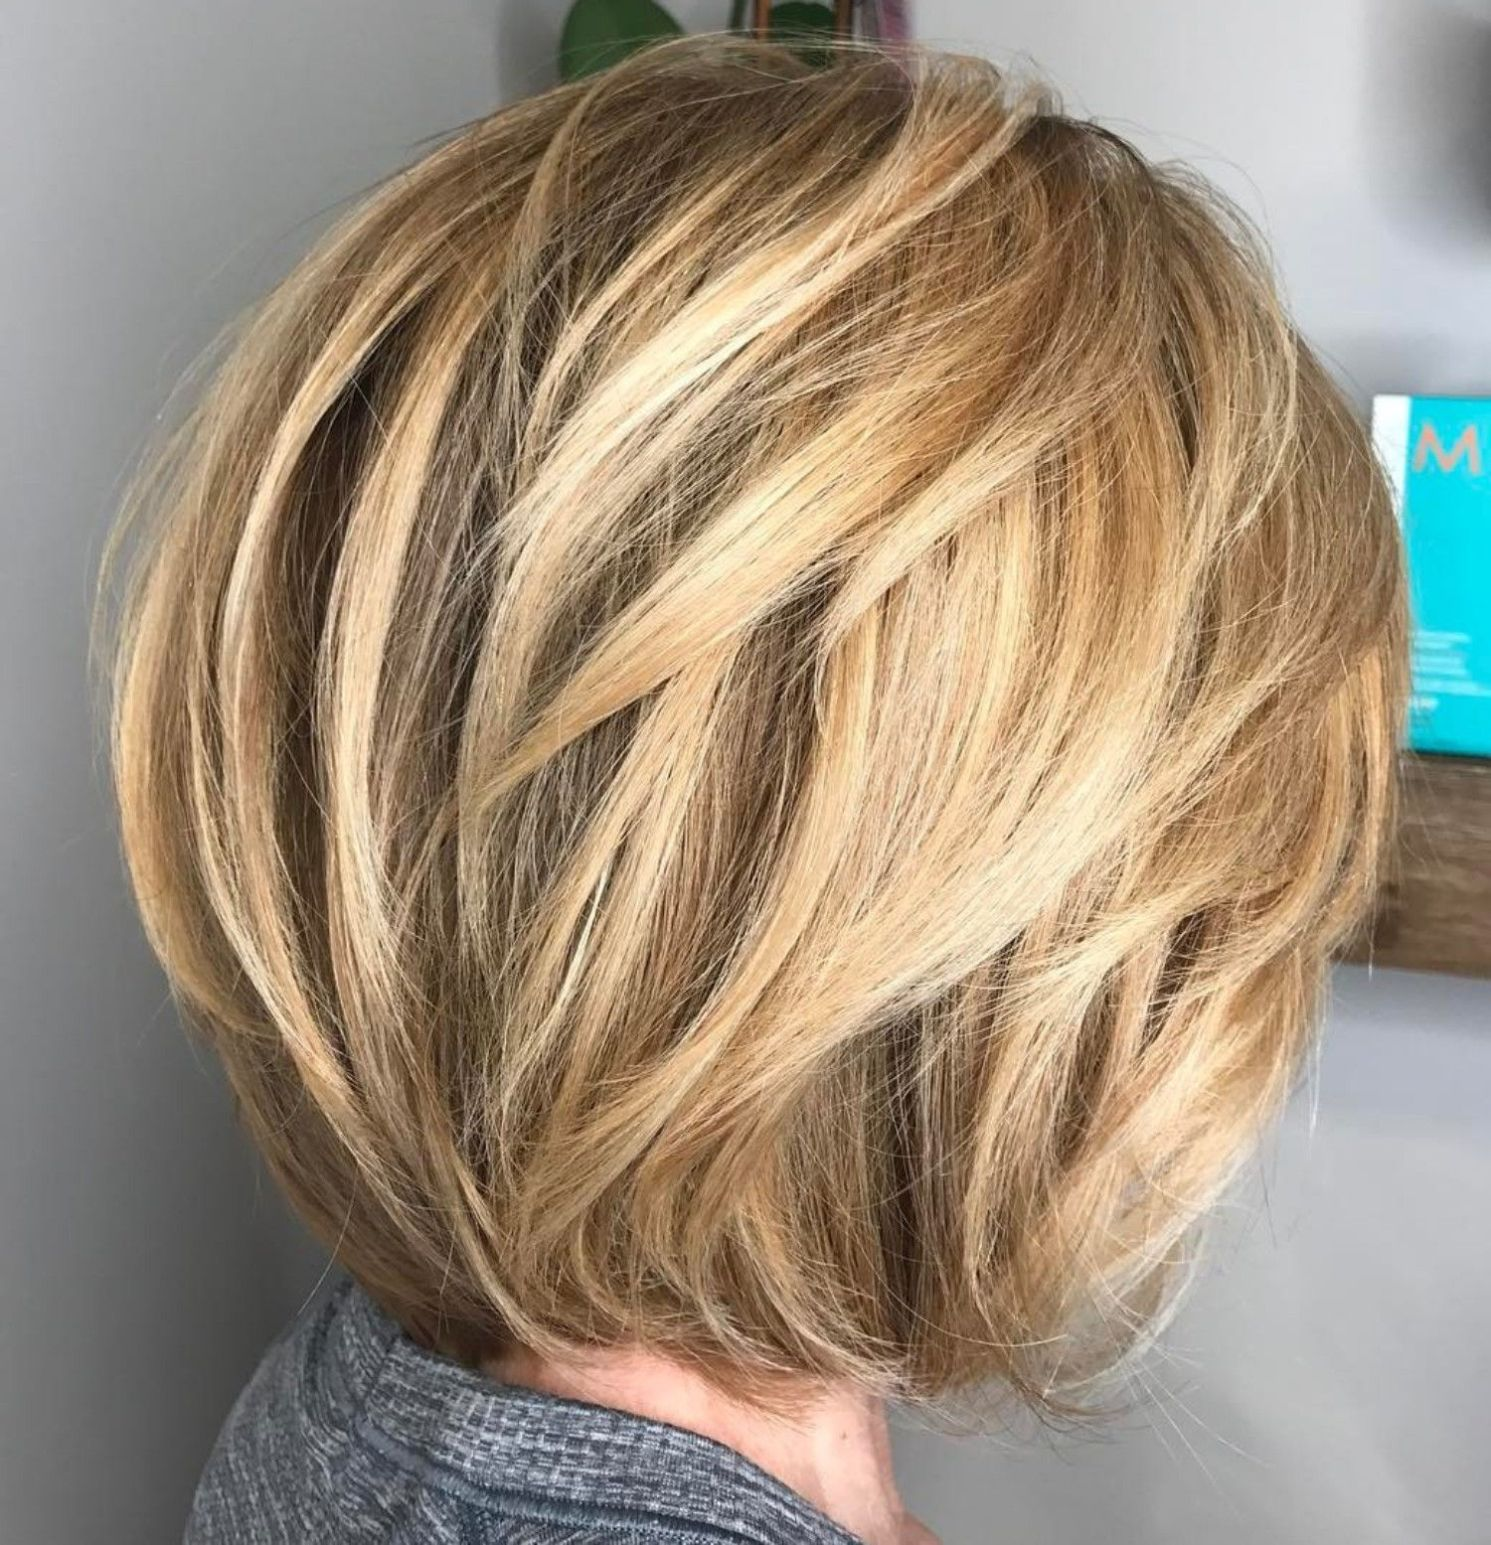 cute and easytostyle short layered hairstyles hair cuts